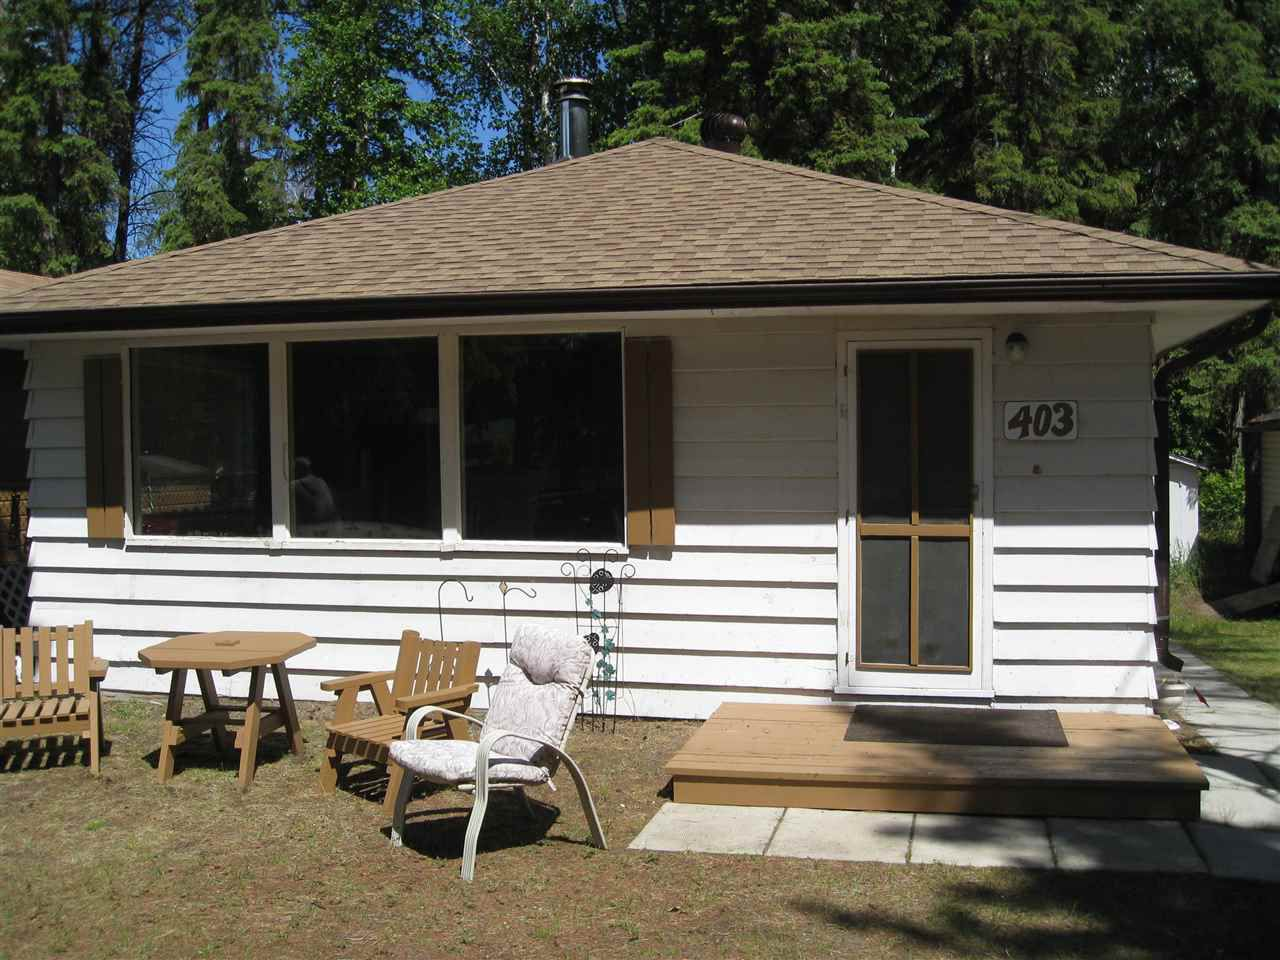 Main Photo: 403 Spruce Street: Rural Sturgeon County House for sale : MLS®# E4161430